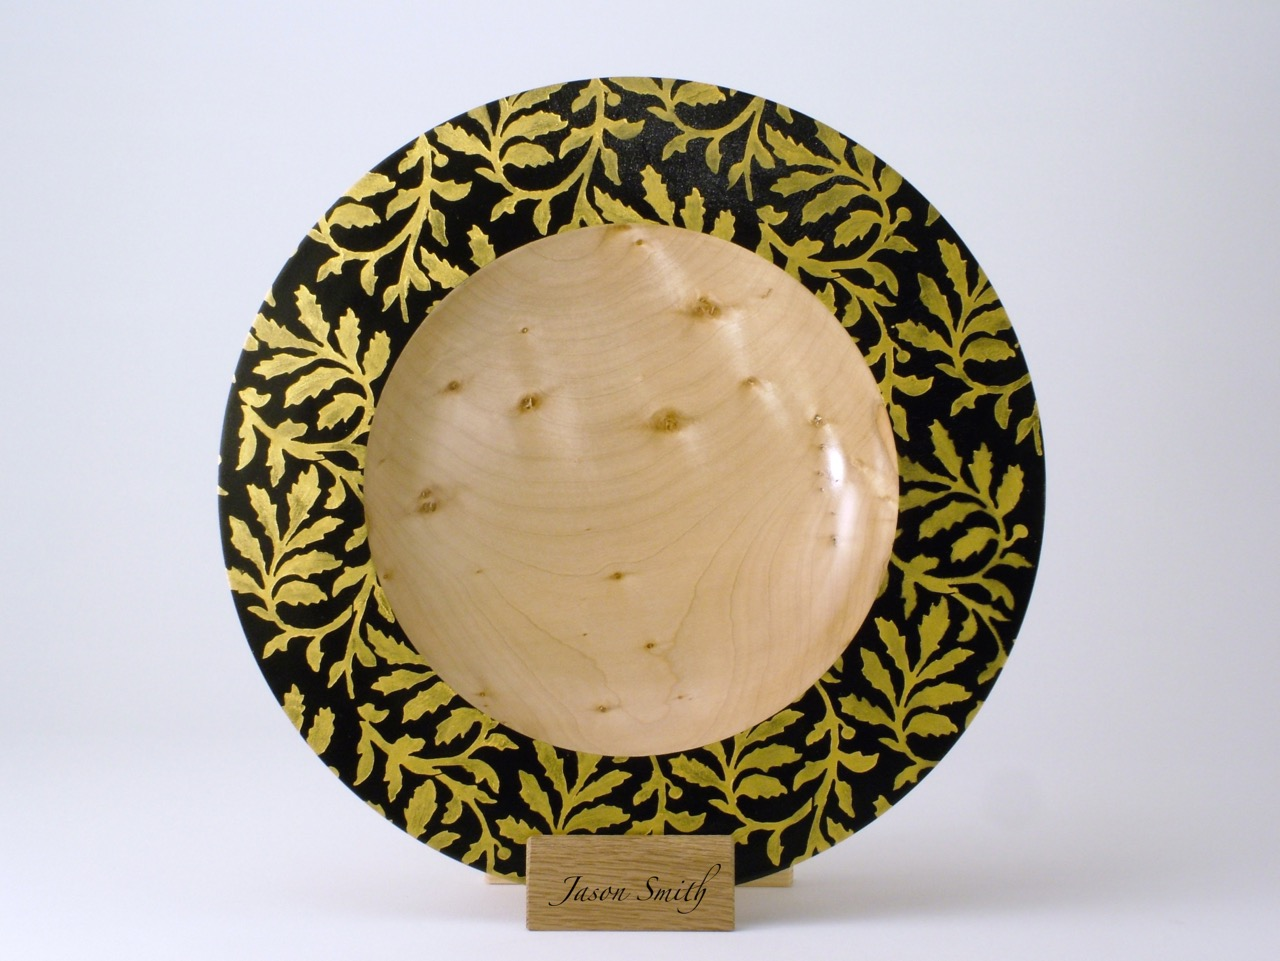 Handmade woodturned gift - Gold Branch Bowl